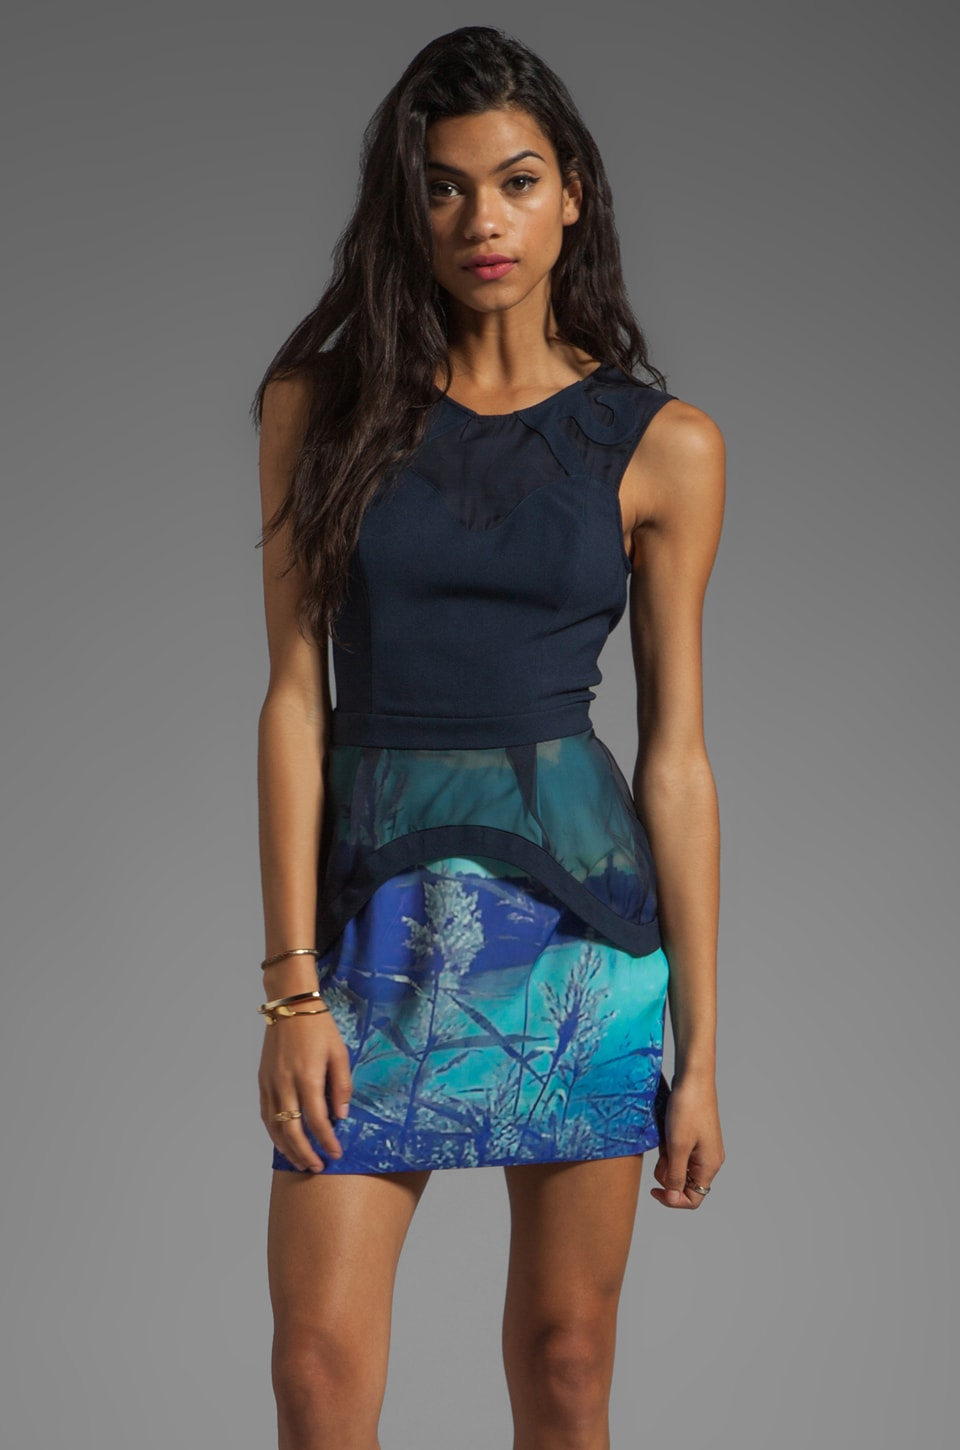 Finders Keepers Lost for Words Dress in Lake Tahoe Dress